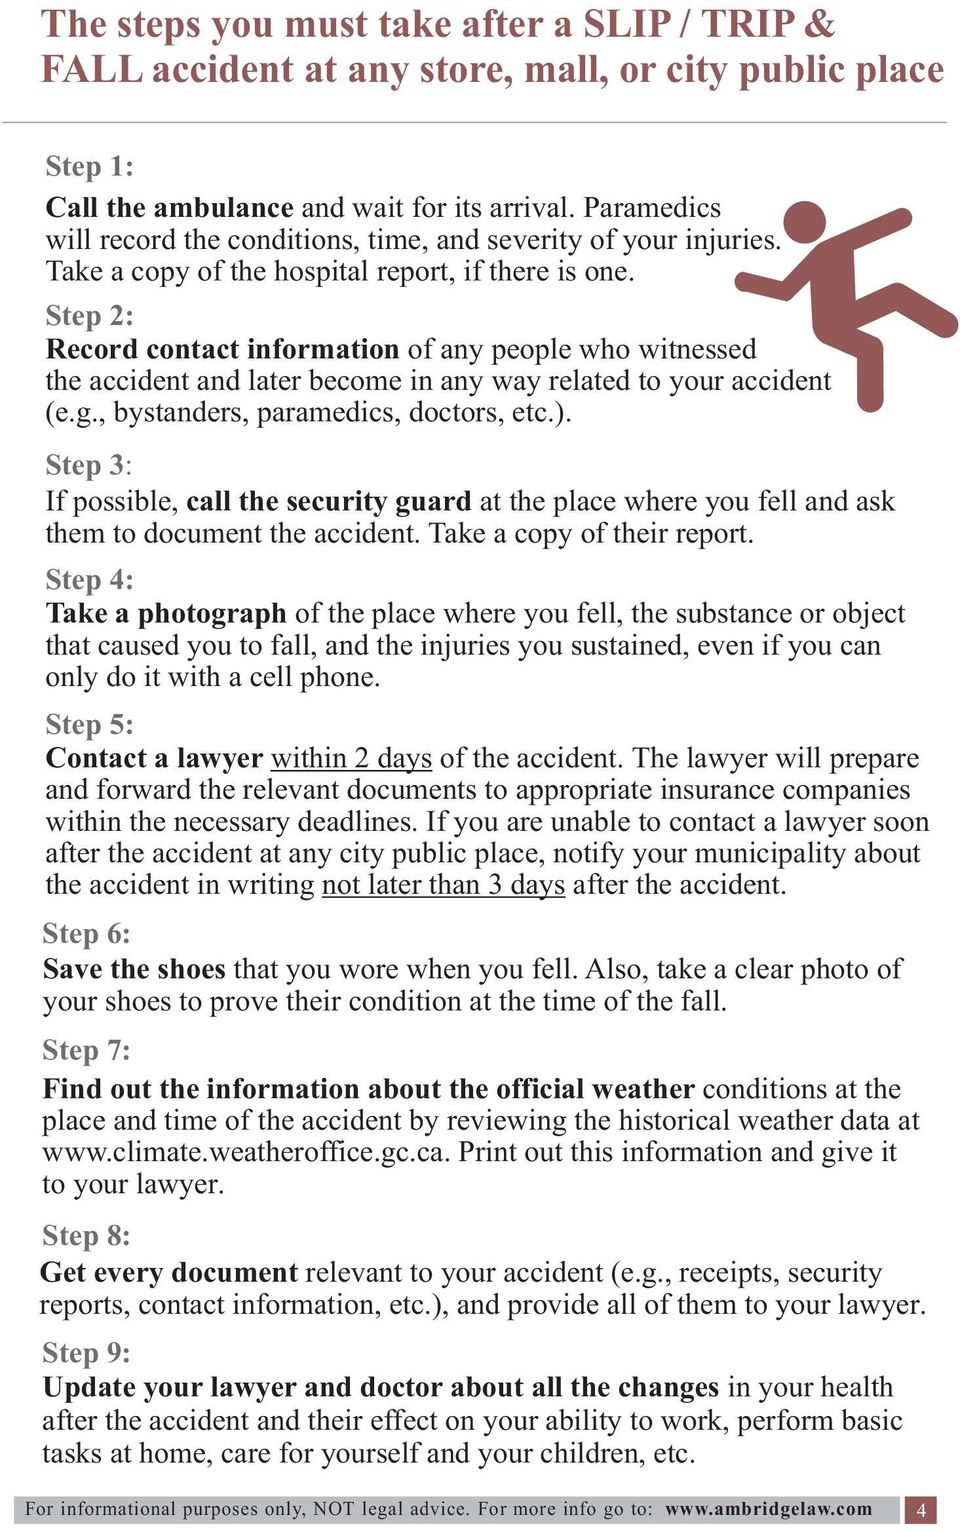 Step 2: Record contact information of any people who witnessed the accident and later become in any way related to your accident (e.g., bystanders, paramedics, doctors, etc.).